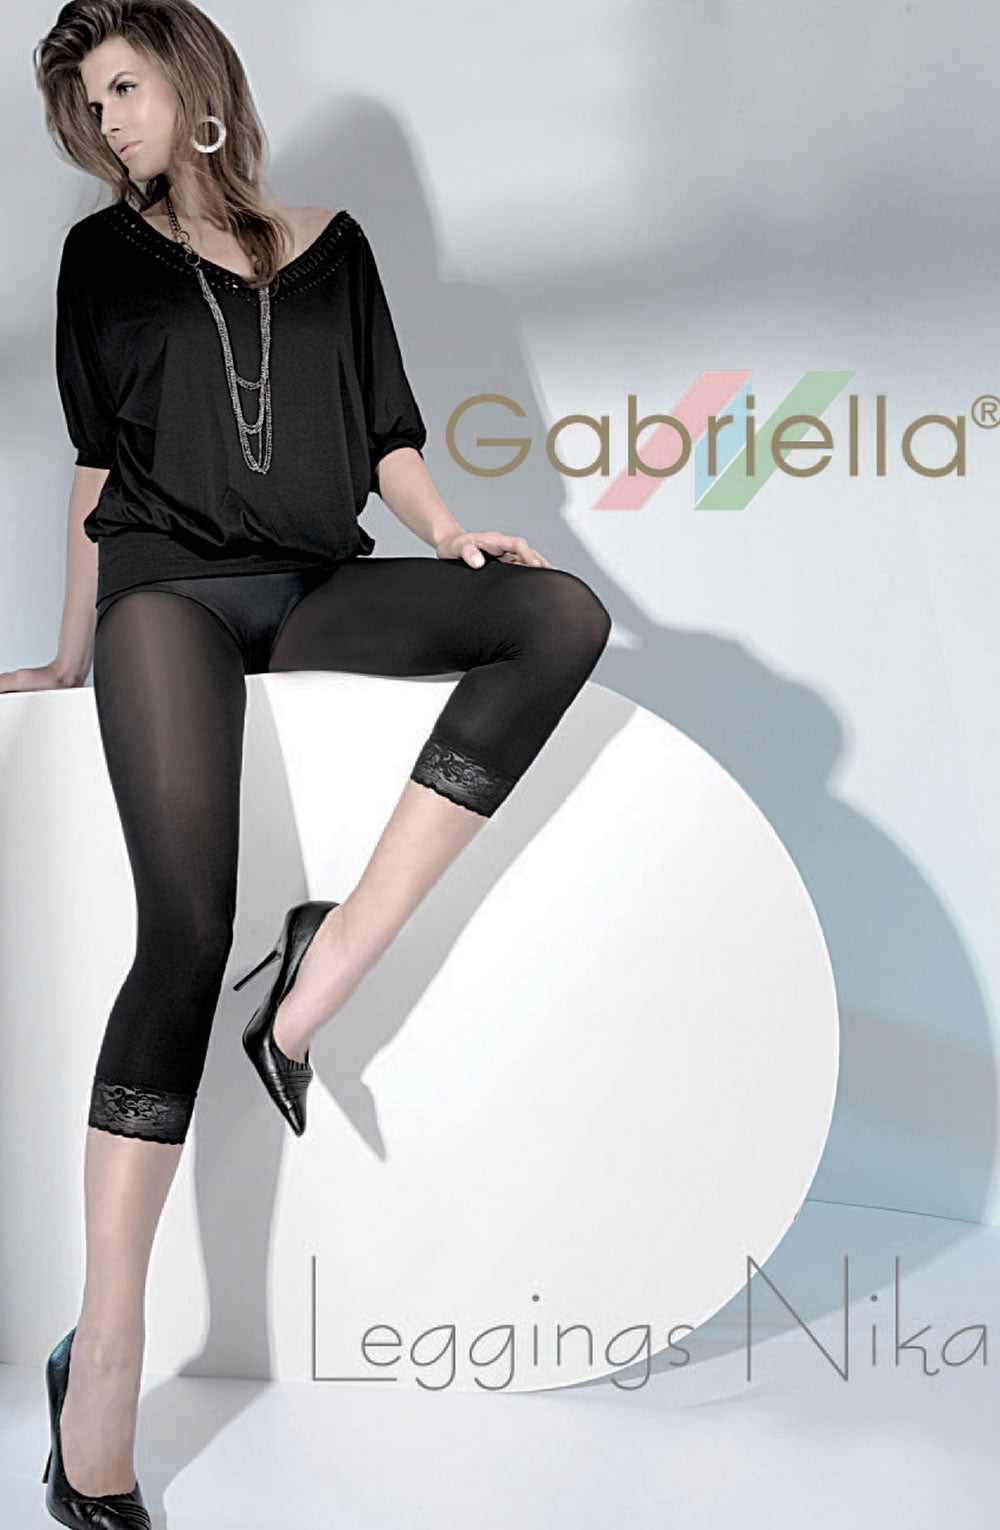 Gabriella Nika Leggings